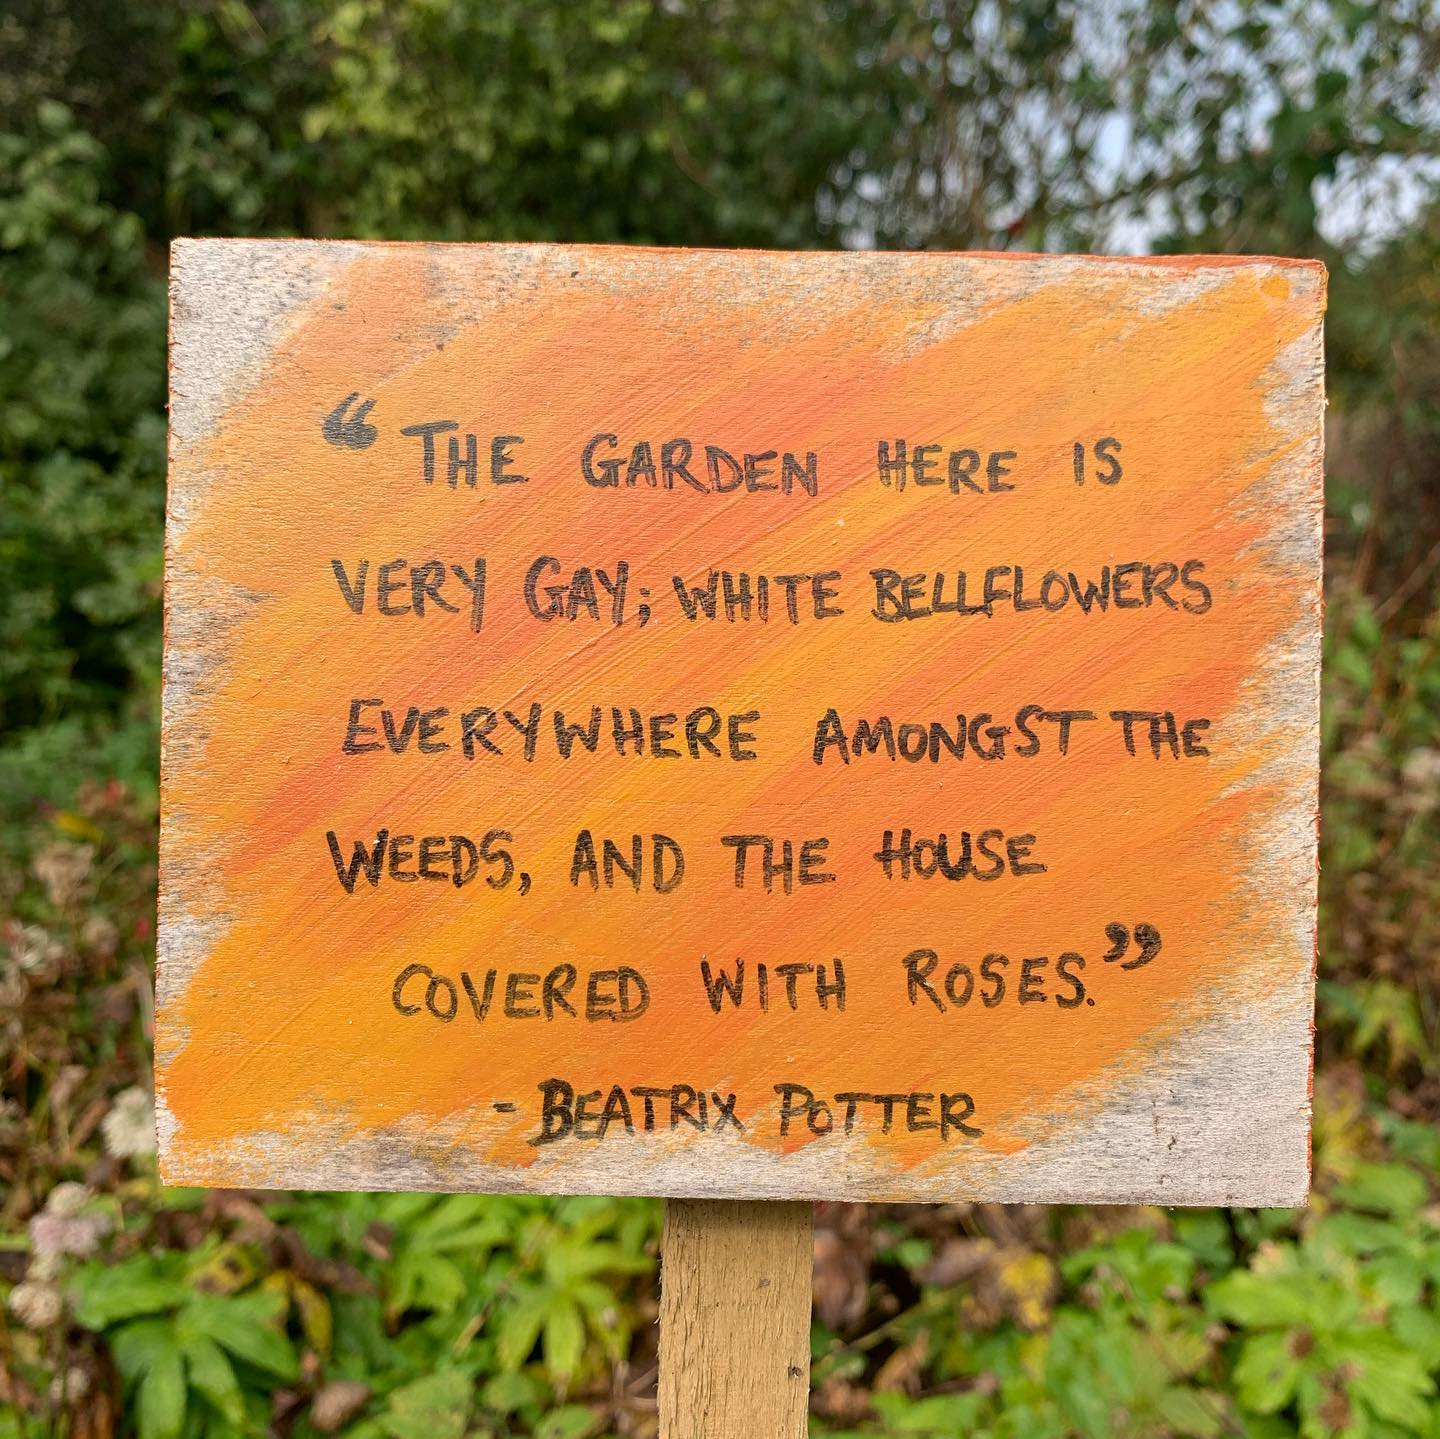 I do love a gay garden! Visited Beatrix Potter's Hilltop today! The charm of an unfussy, uncomplicated and relaxed rustic garden. Must must must embrace in my own garden more! @nationaltrust